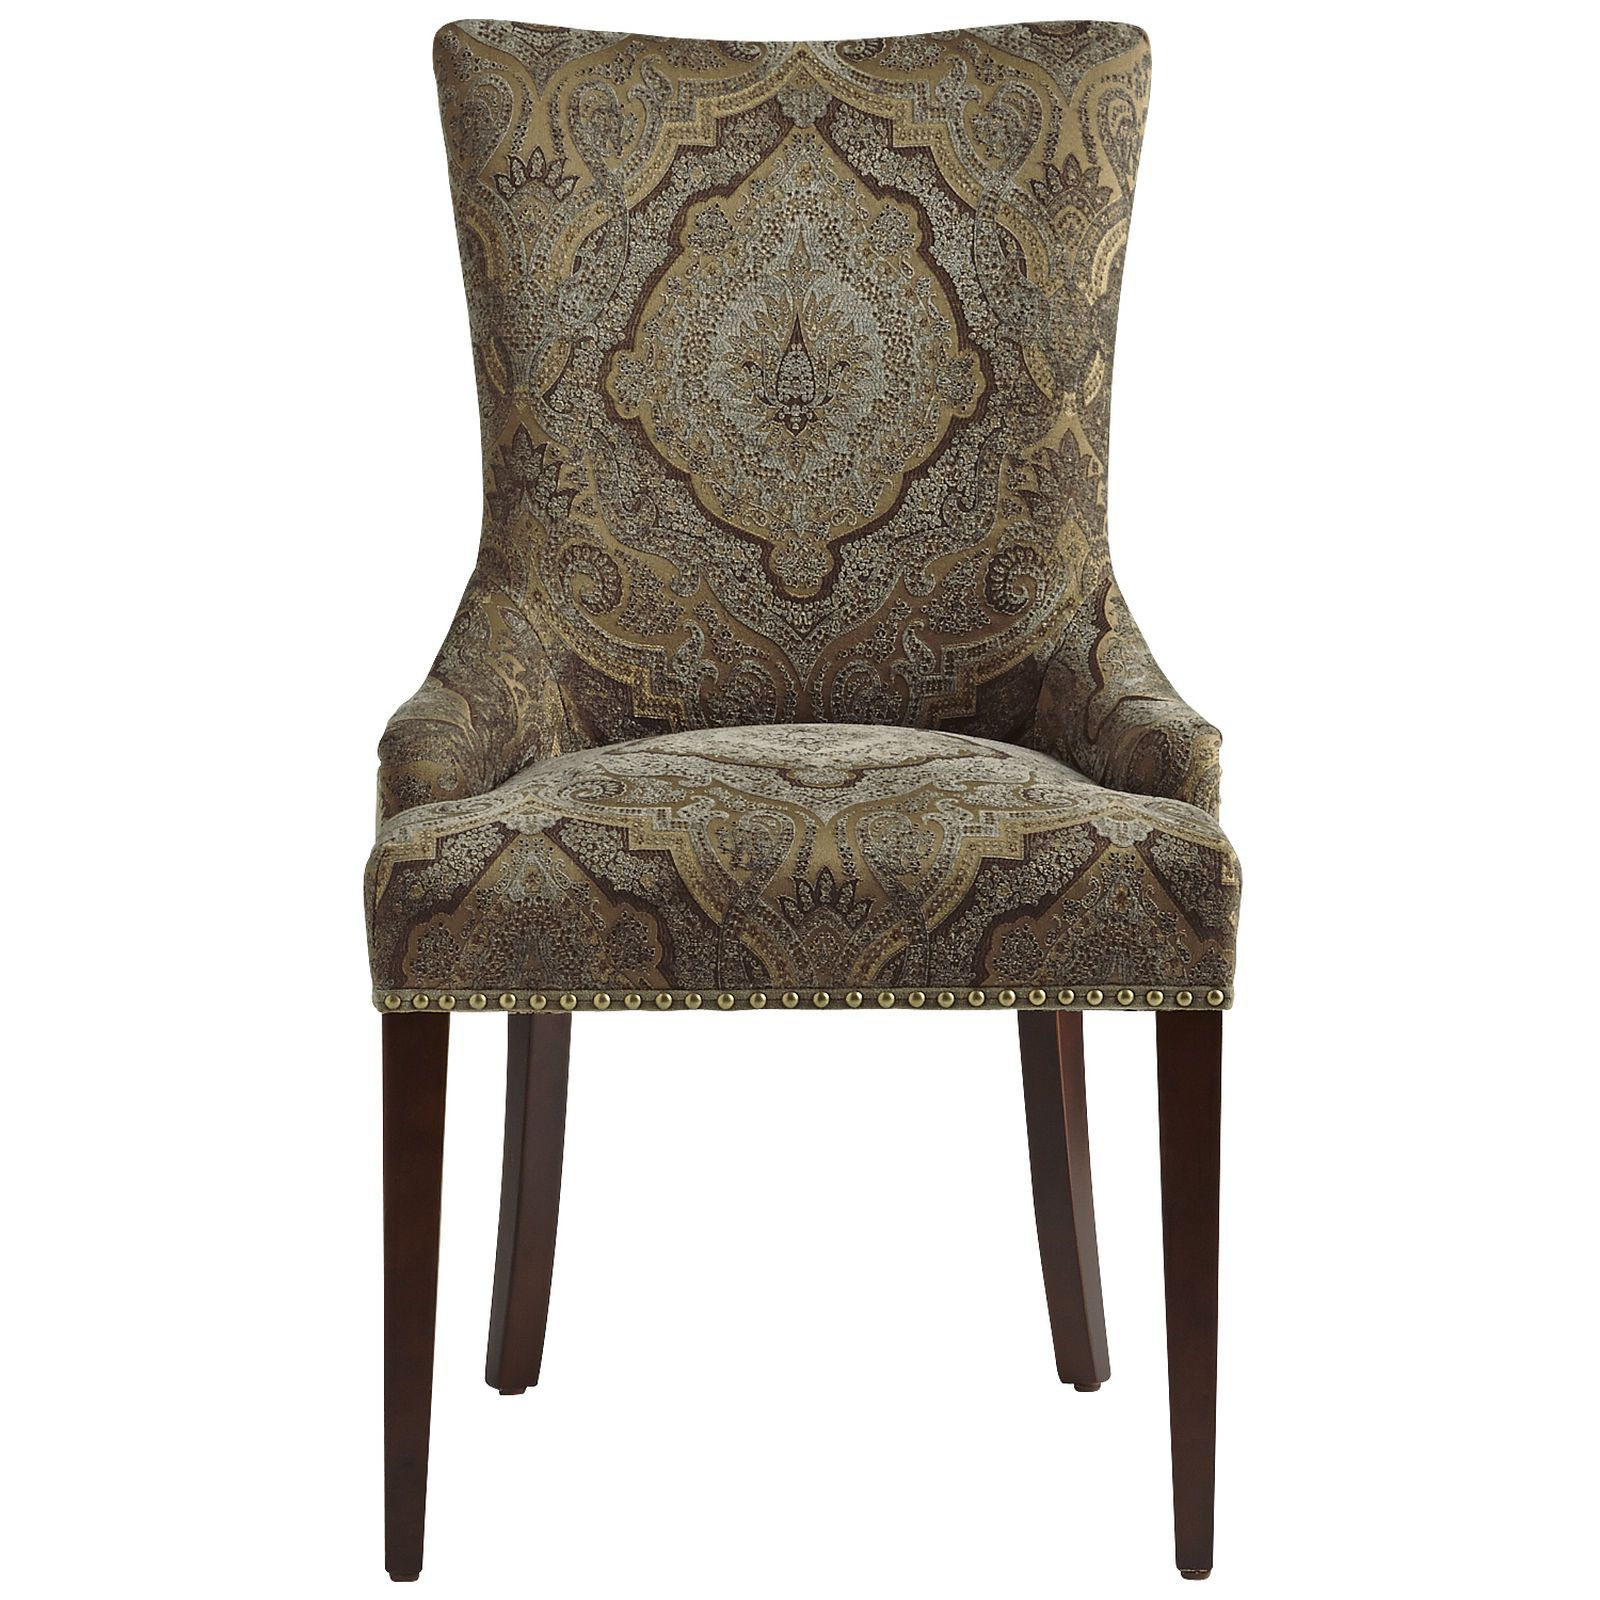 Adelle Seagrass Dining Chair | Pier 1 Imports